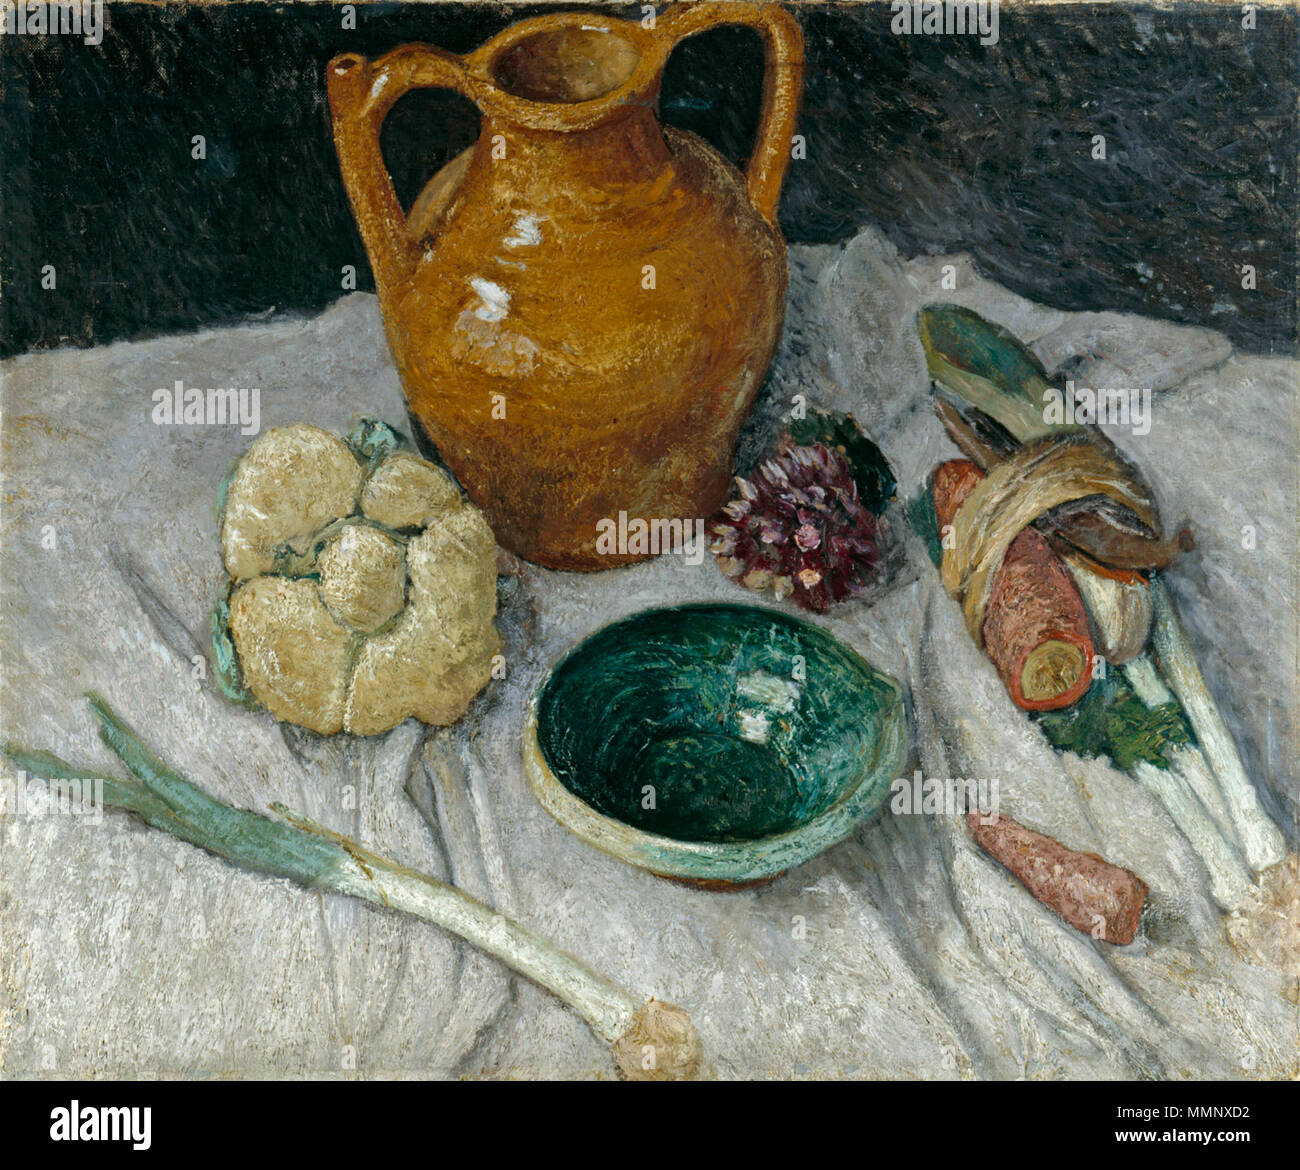 35101 . 1905.   Paula Modersohn-Becker -�876��7)-�-� Description German painter  Date of birth/death 8 February 1876 21 November 1907  Location of birth/death Dresden-Friedrichstadt Worpswede bei Bremen  Work location Paris, Worpswede bei Bremen  Authority control  : Q234370 VIAF:��913211 ISNI:��00 0000 8372 6579 ULAN:��0004913 LCCN:��0000154 NLA:��357223 WorldCat Paula Modersohn-Becker - Nature morte avec cruche jaune - 1905 Stock Photo